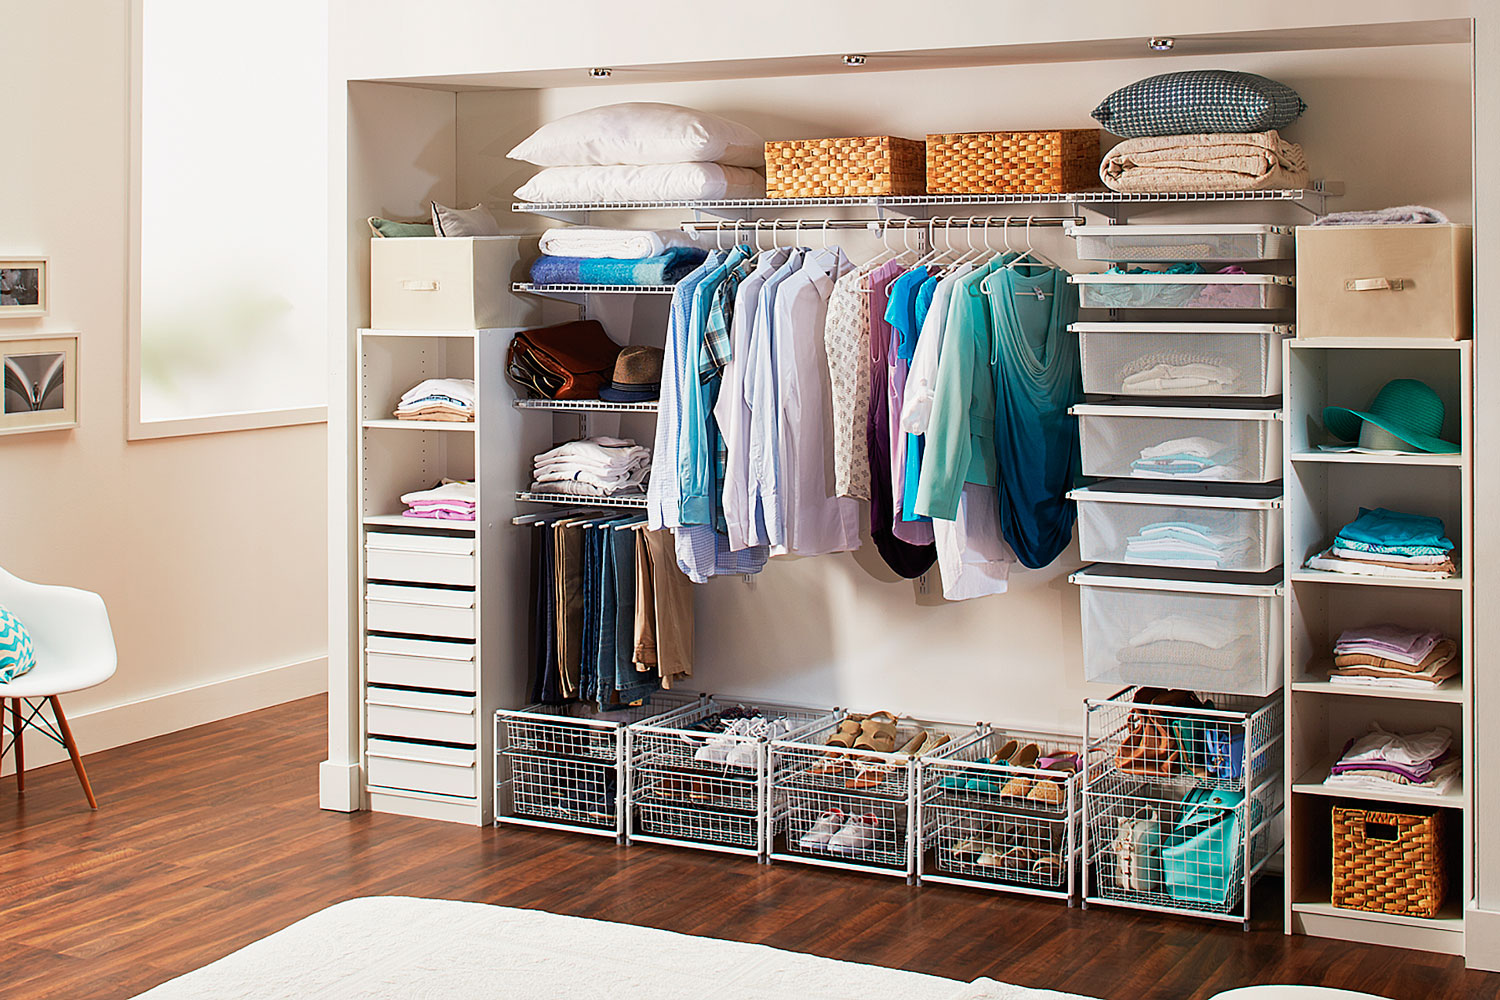 Do It Yourself Home Decorating Ideas: DIY Wardrobe: How To Build A Wardrobe